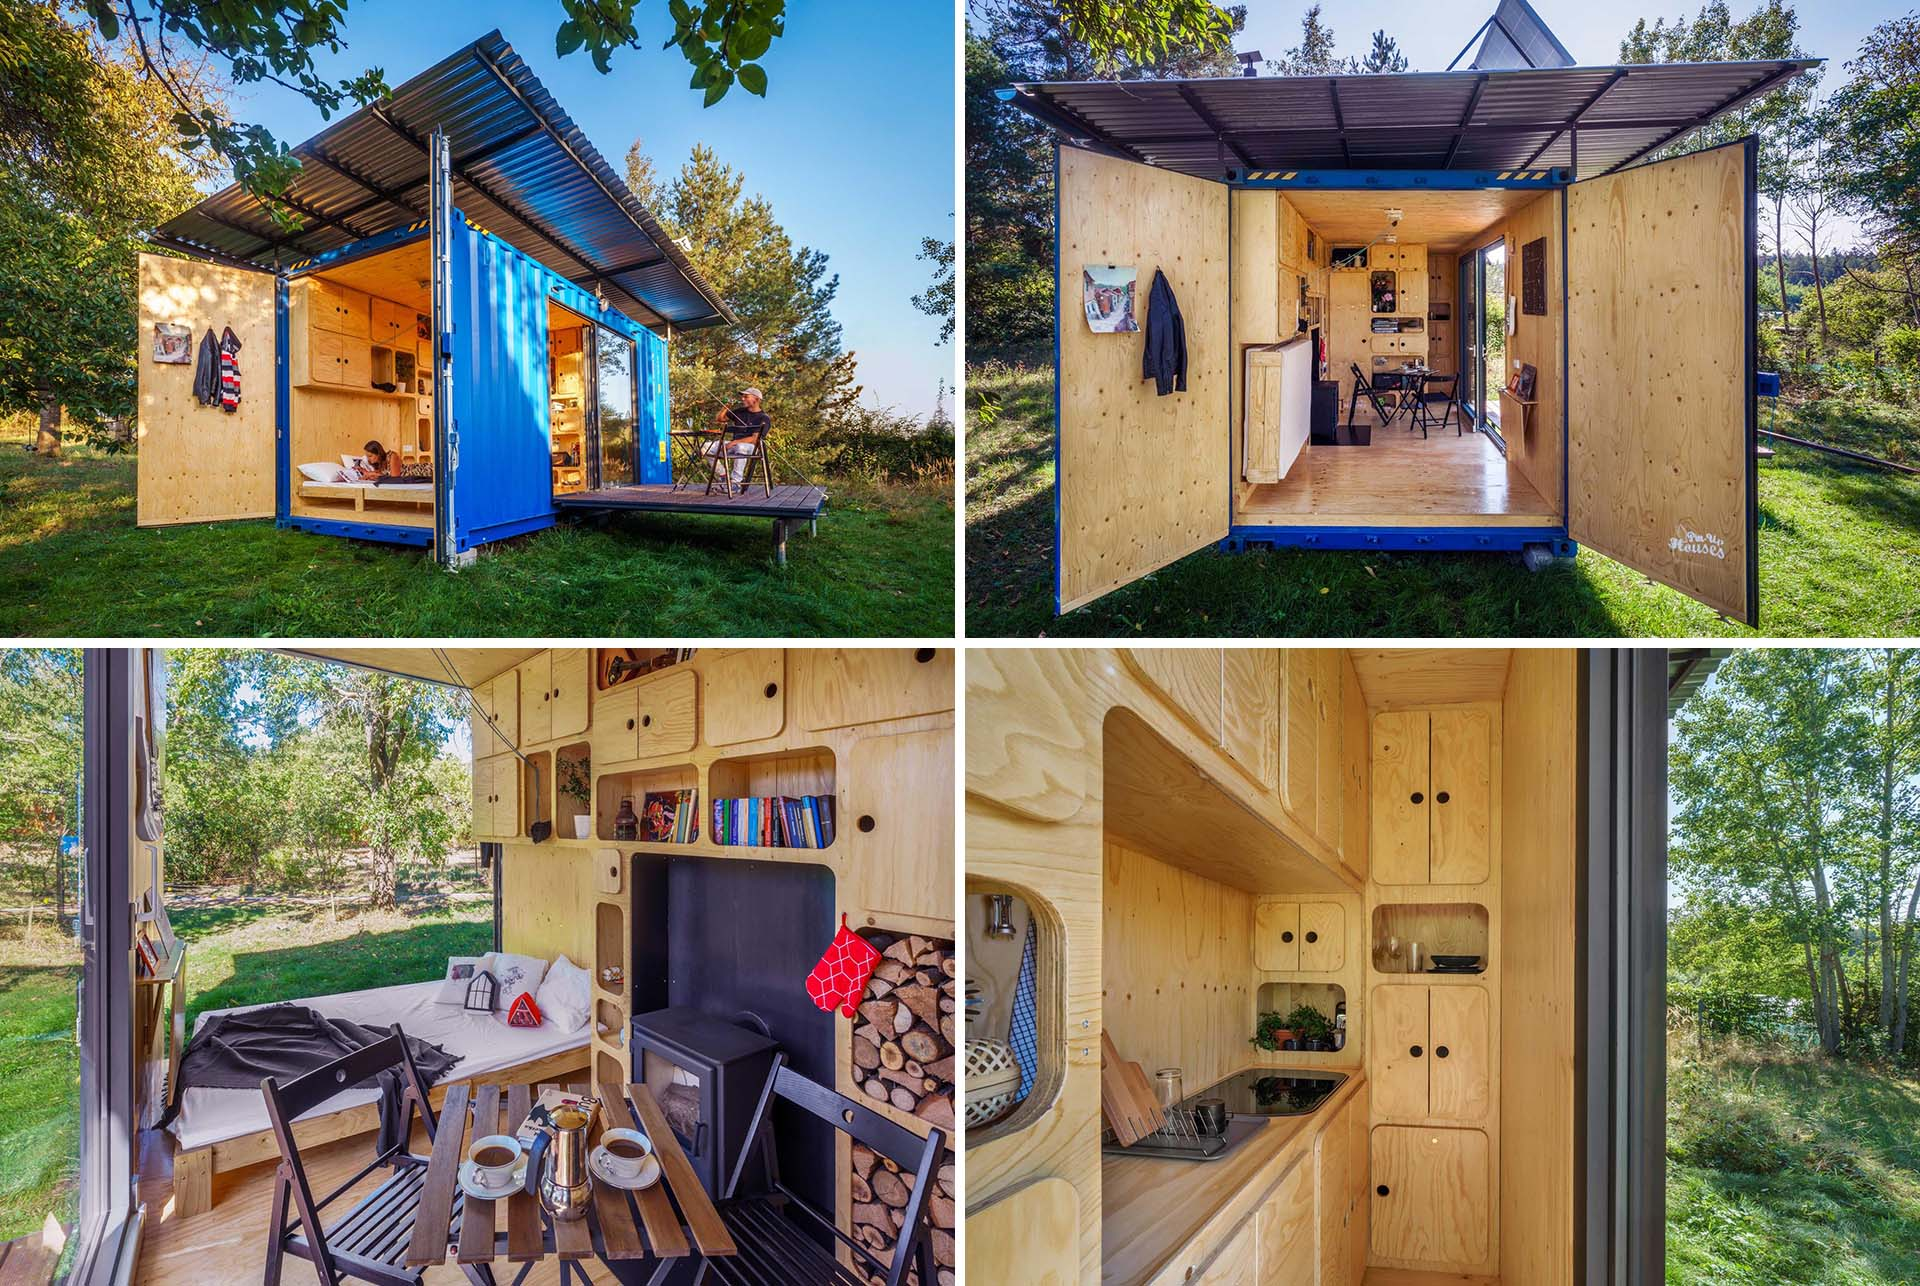 This Off The Grid Tiny House Made From A Small Shipping Container Is Filled With A Wood Interior Best Architecture Autocad Cad Design Resource